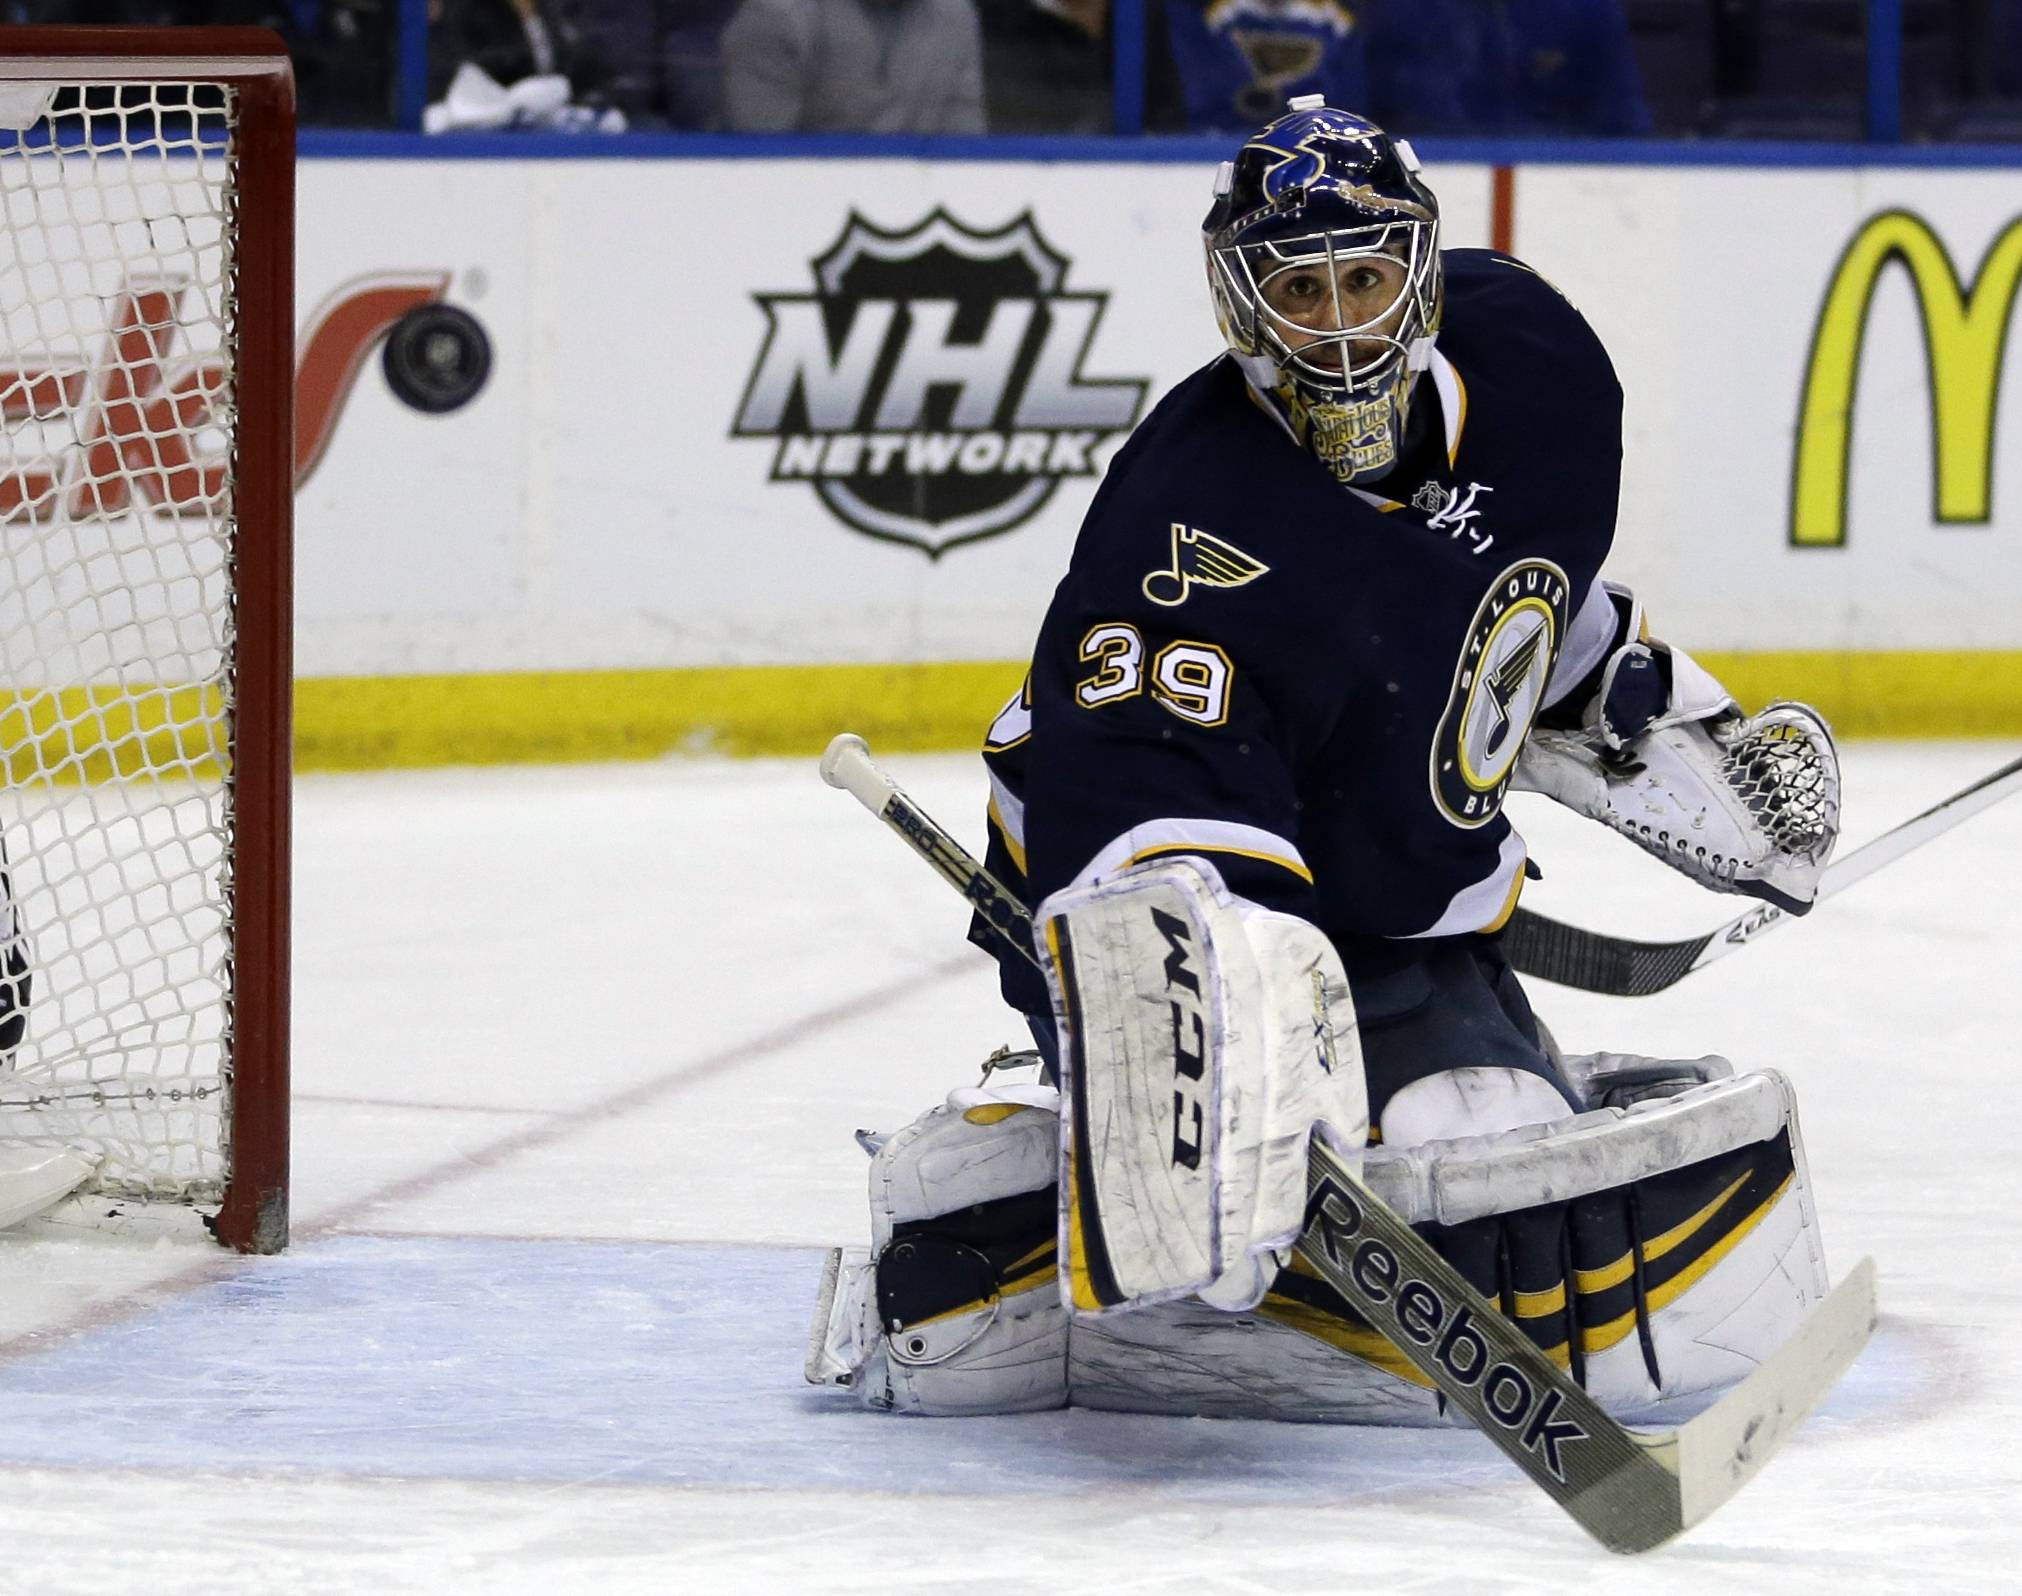 The Blackhawks will open the playoffs on the road this week against the St. Louis Blues and goalie Ryan Miller.